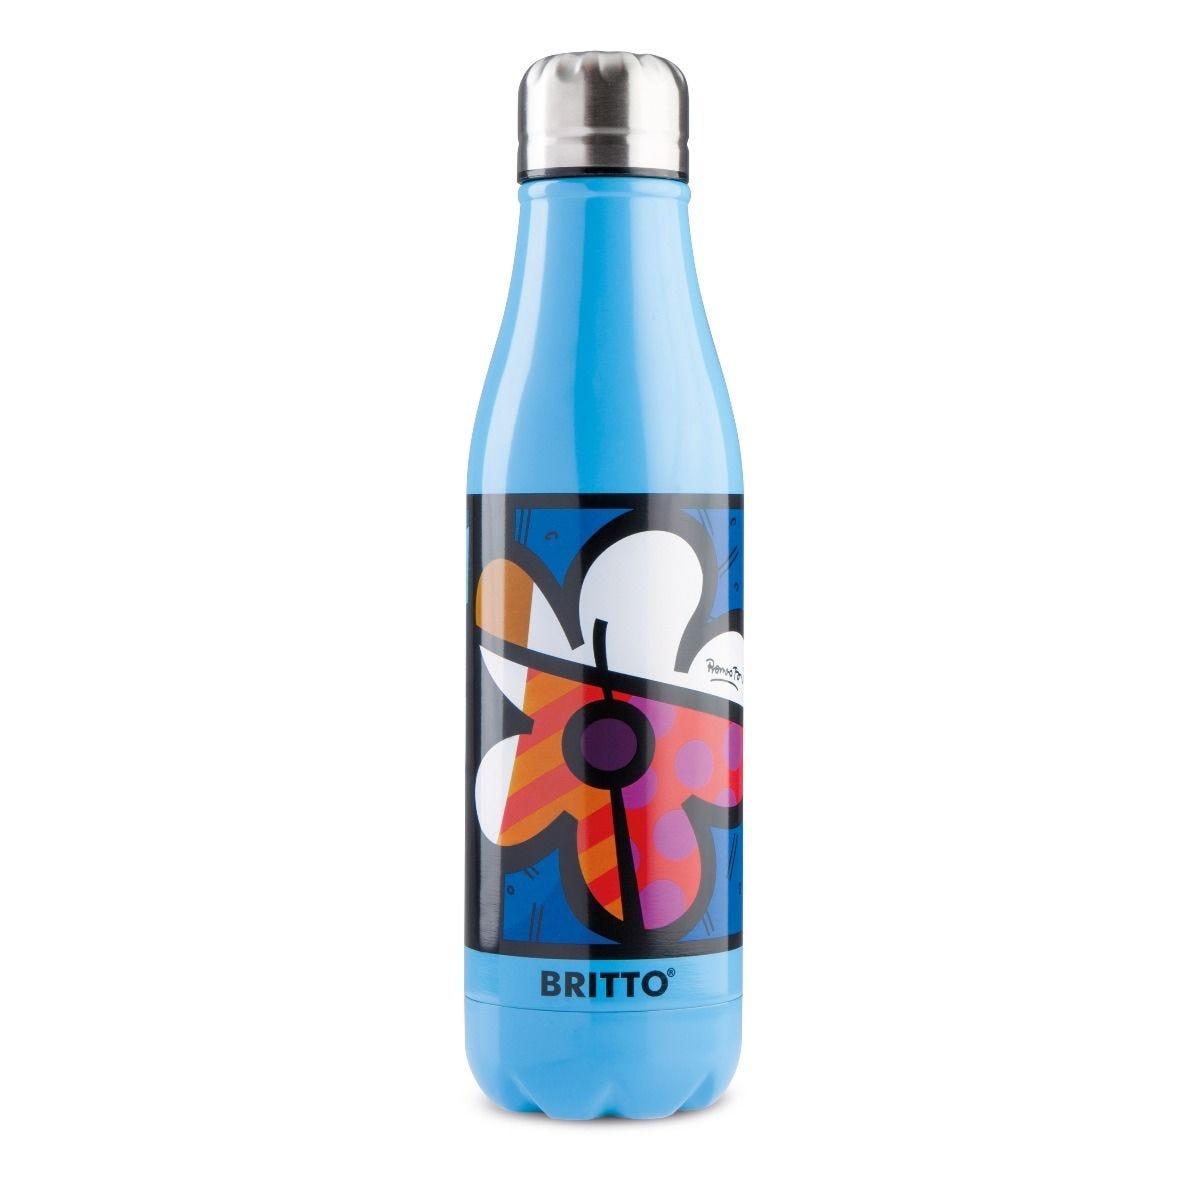 Britto Stainless Steel Floral Blue Insulated Flask Bottle - 500ml